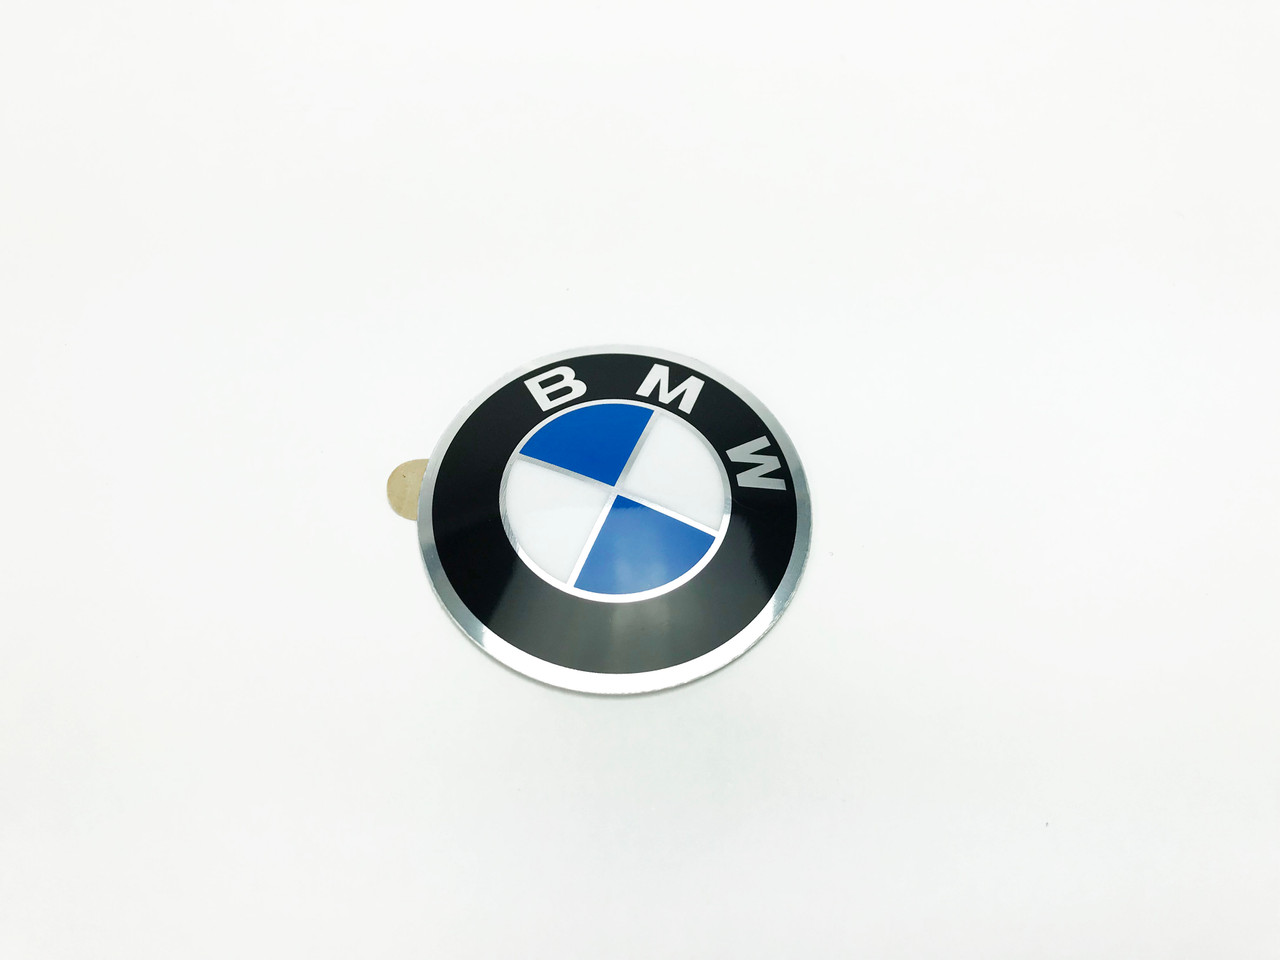 Genuine BMW Steering Wheel Airbag Roundel Emblem, 45mm Self-Adhesive